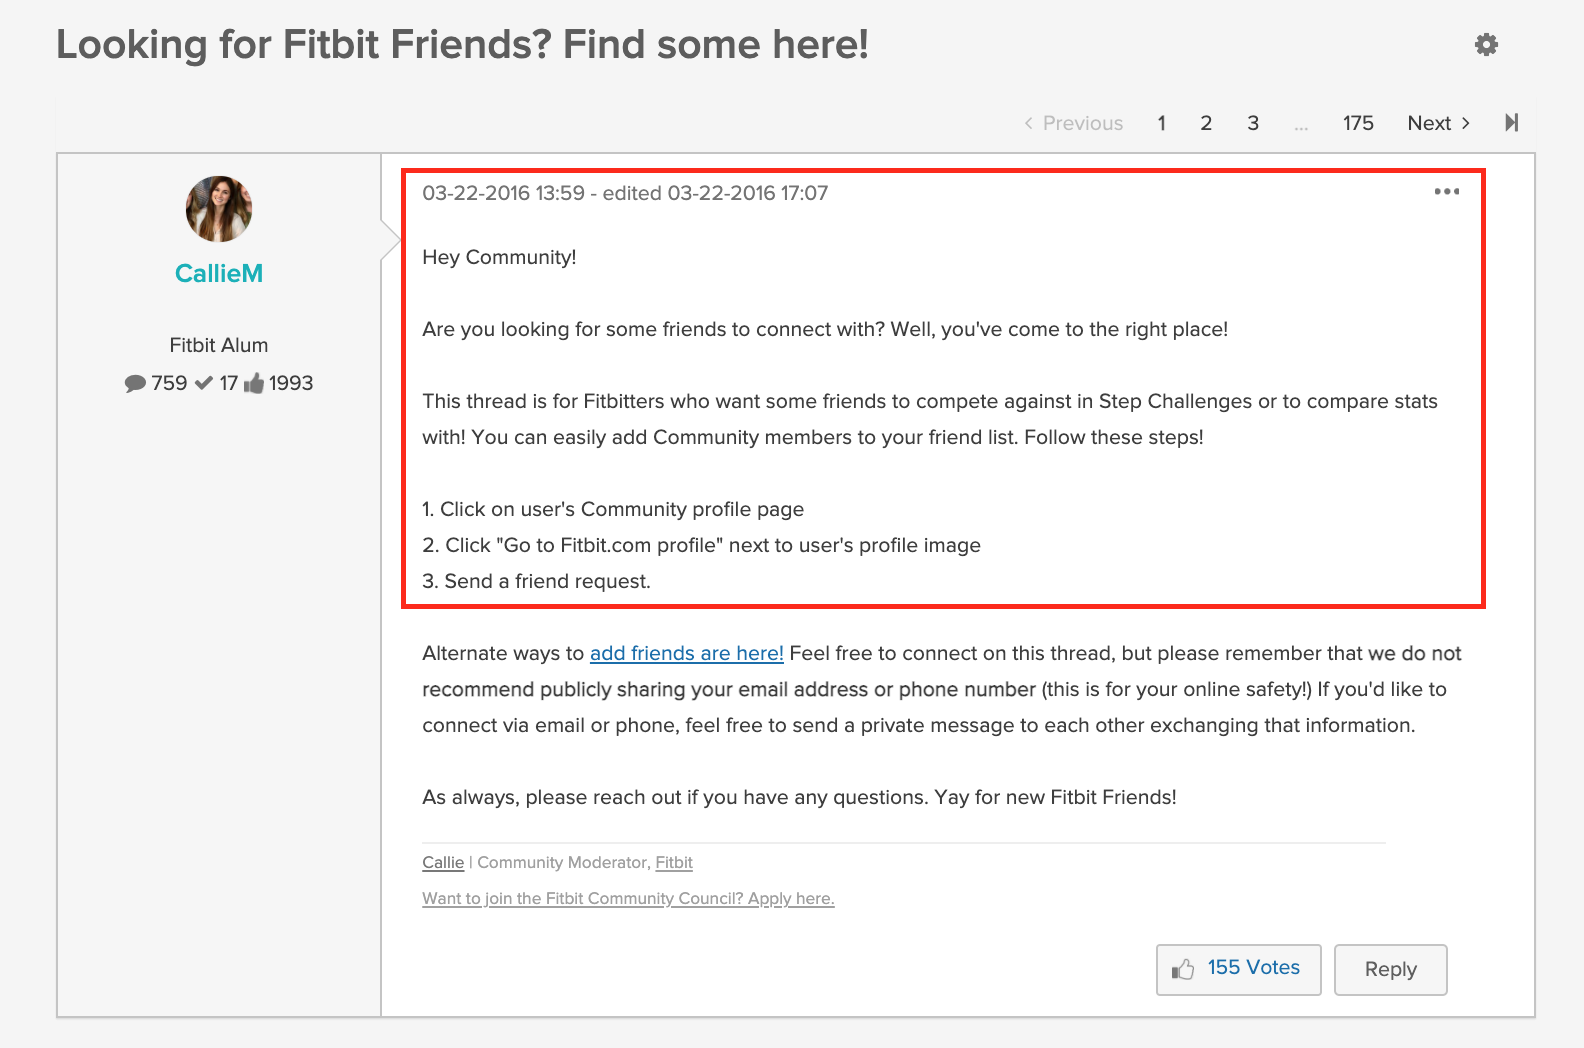 collaboration in Fitbit community